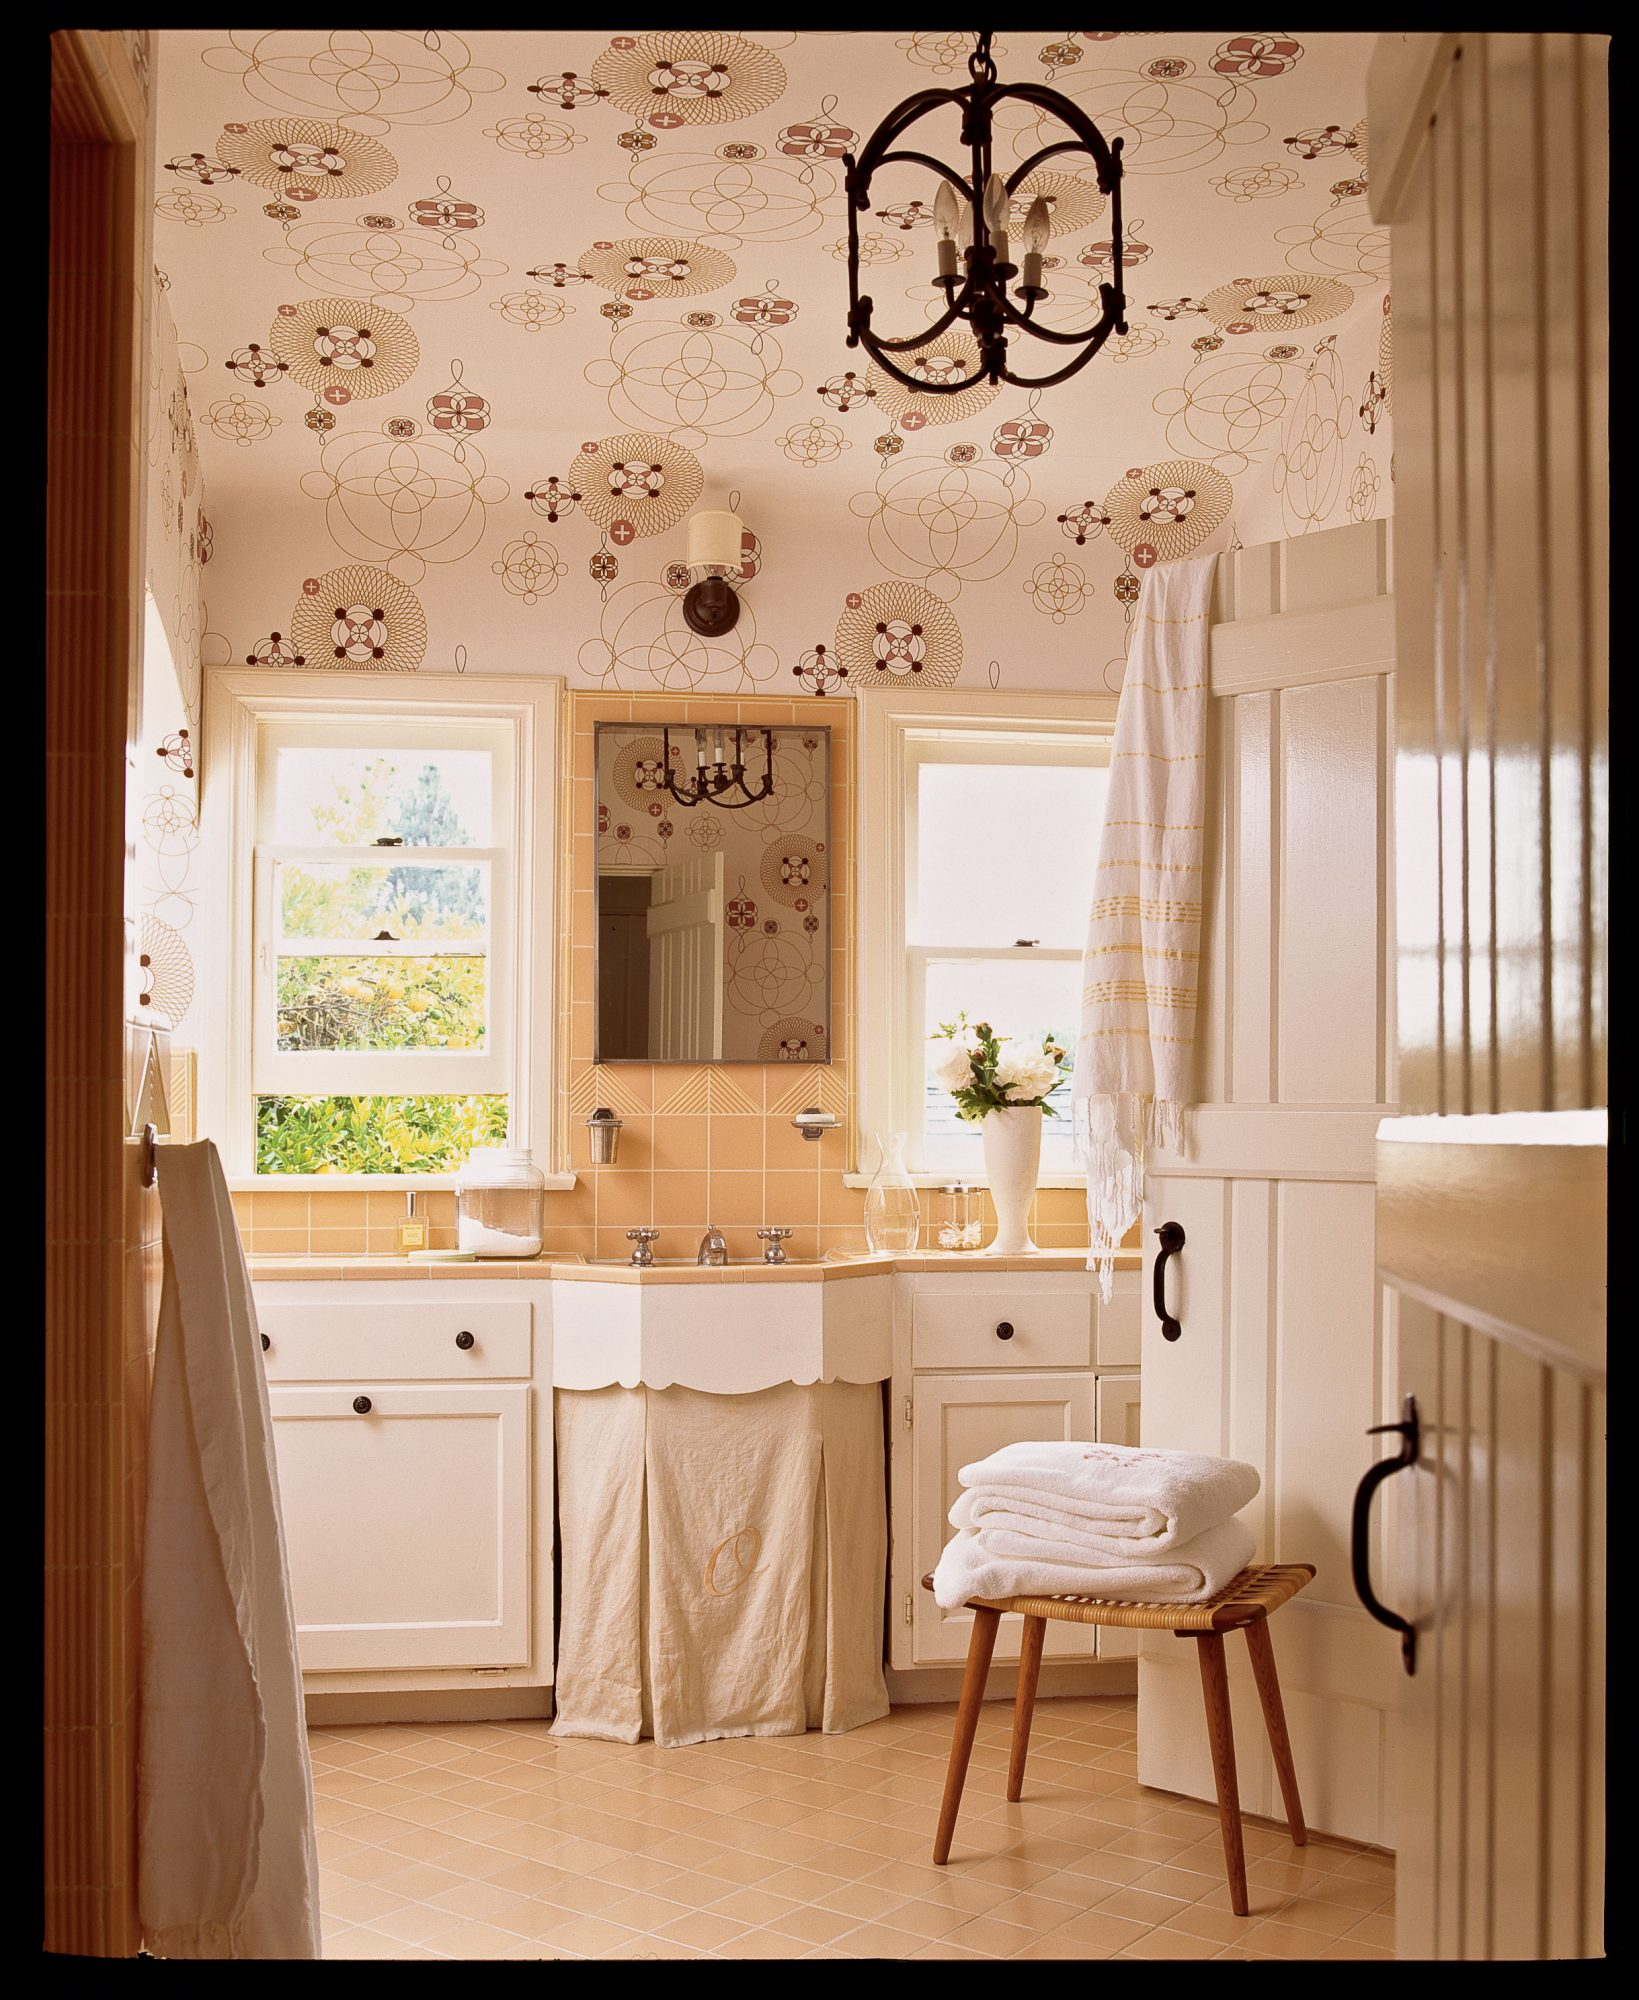 Itching for a renovation, but don't have lots of cash? The simple addition of whimsical wallpaper on the ceiling and walls diverts the focus from the retro peach tile and breathes new life into the room.